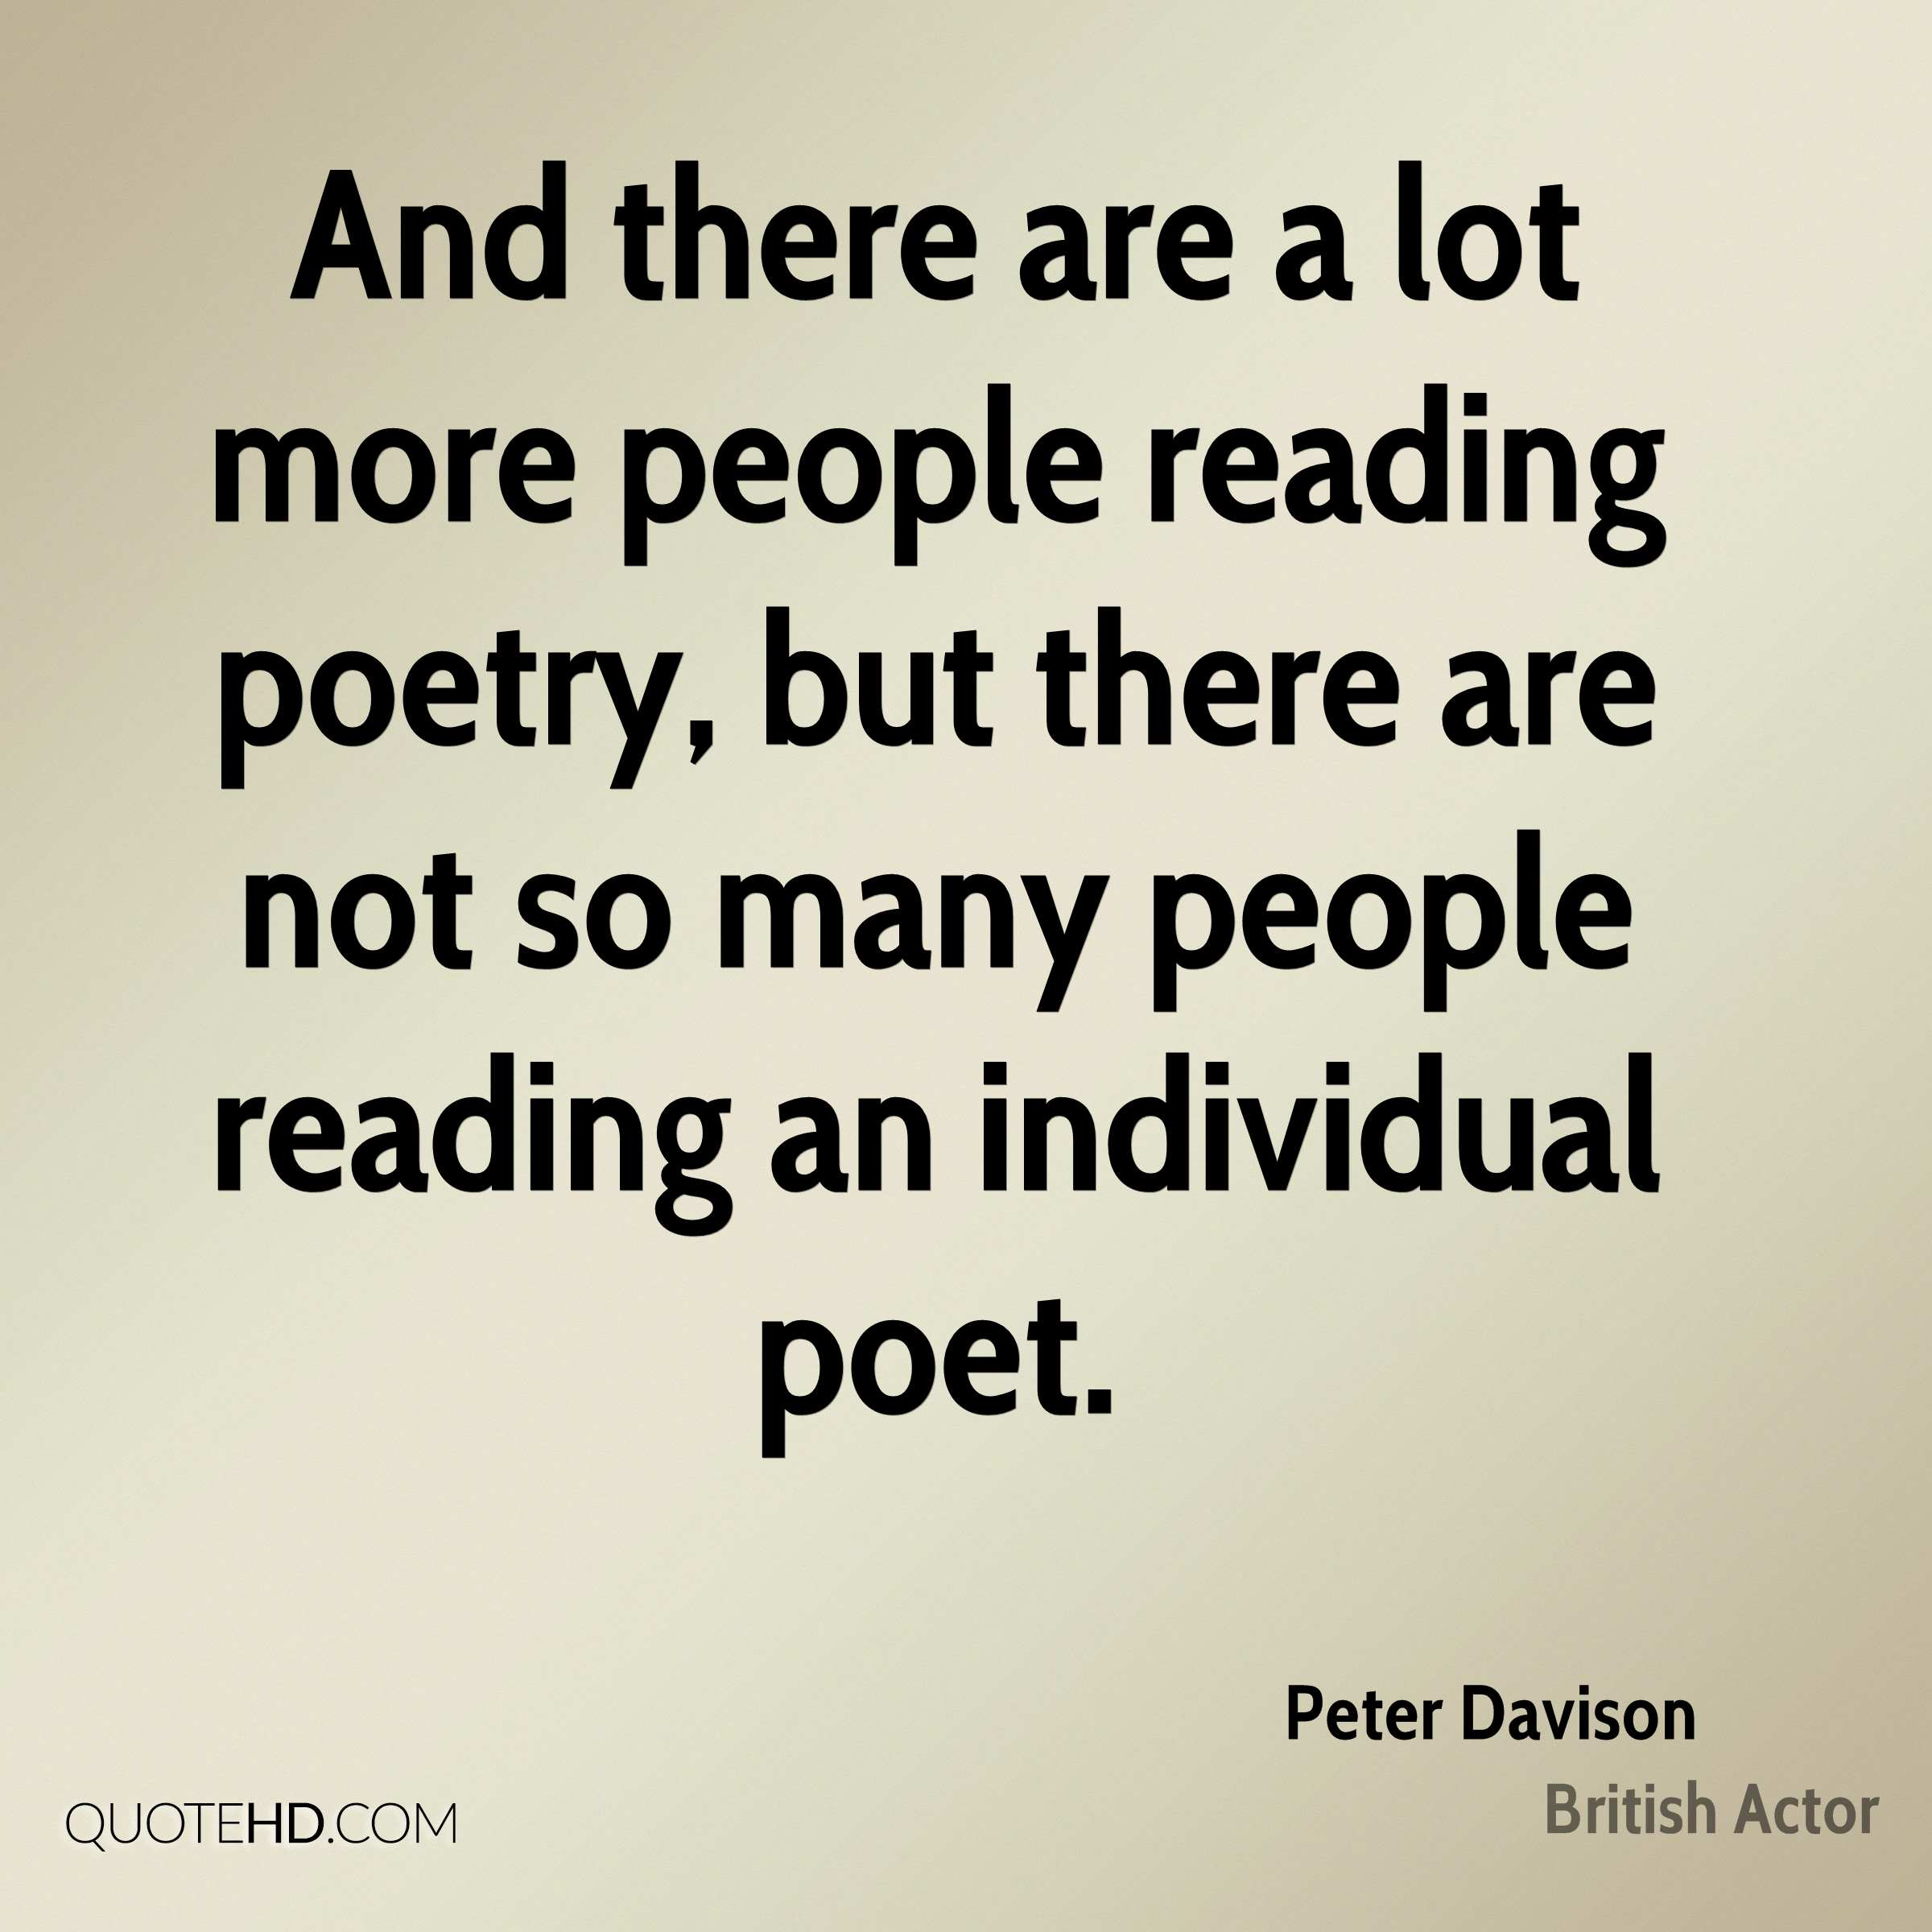 And there are a lot more people reading poetry, but there are not so many people reading an individual poet.